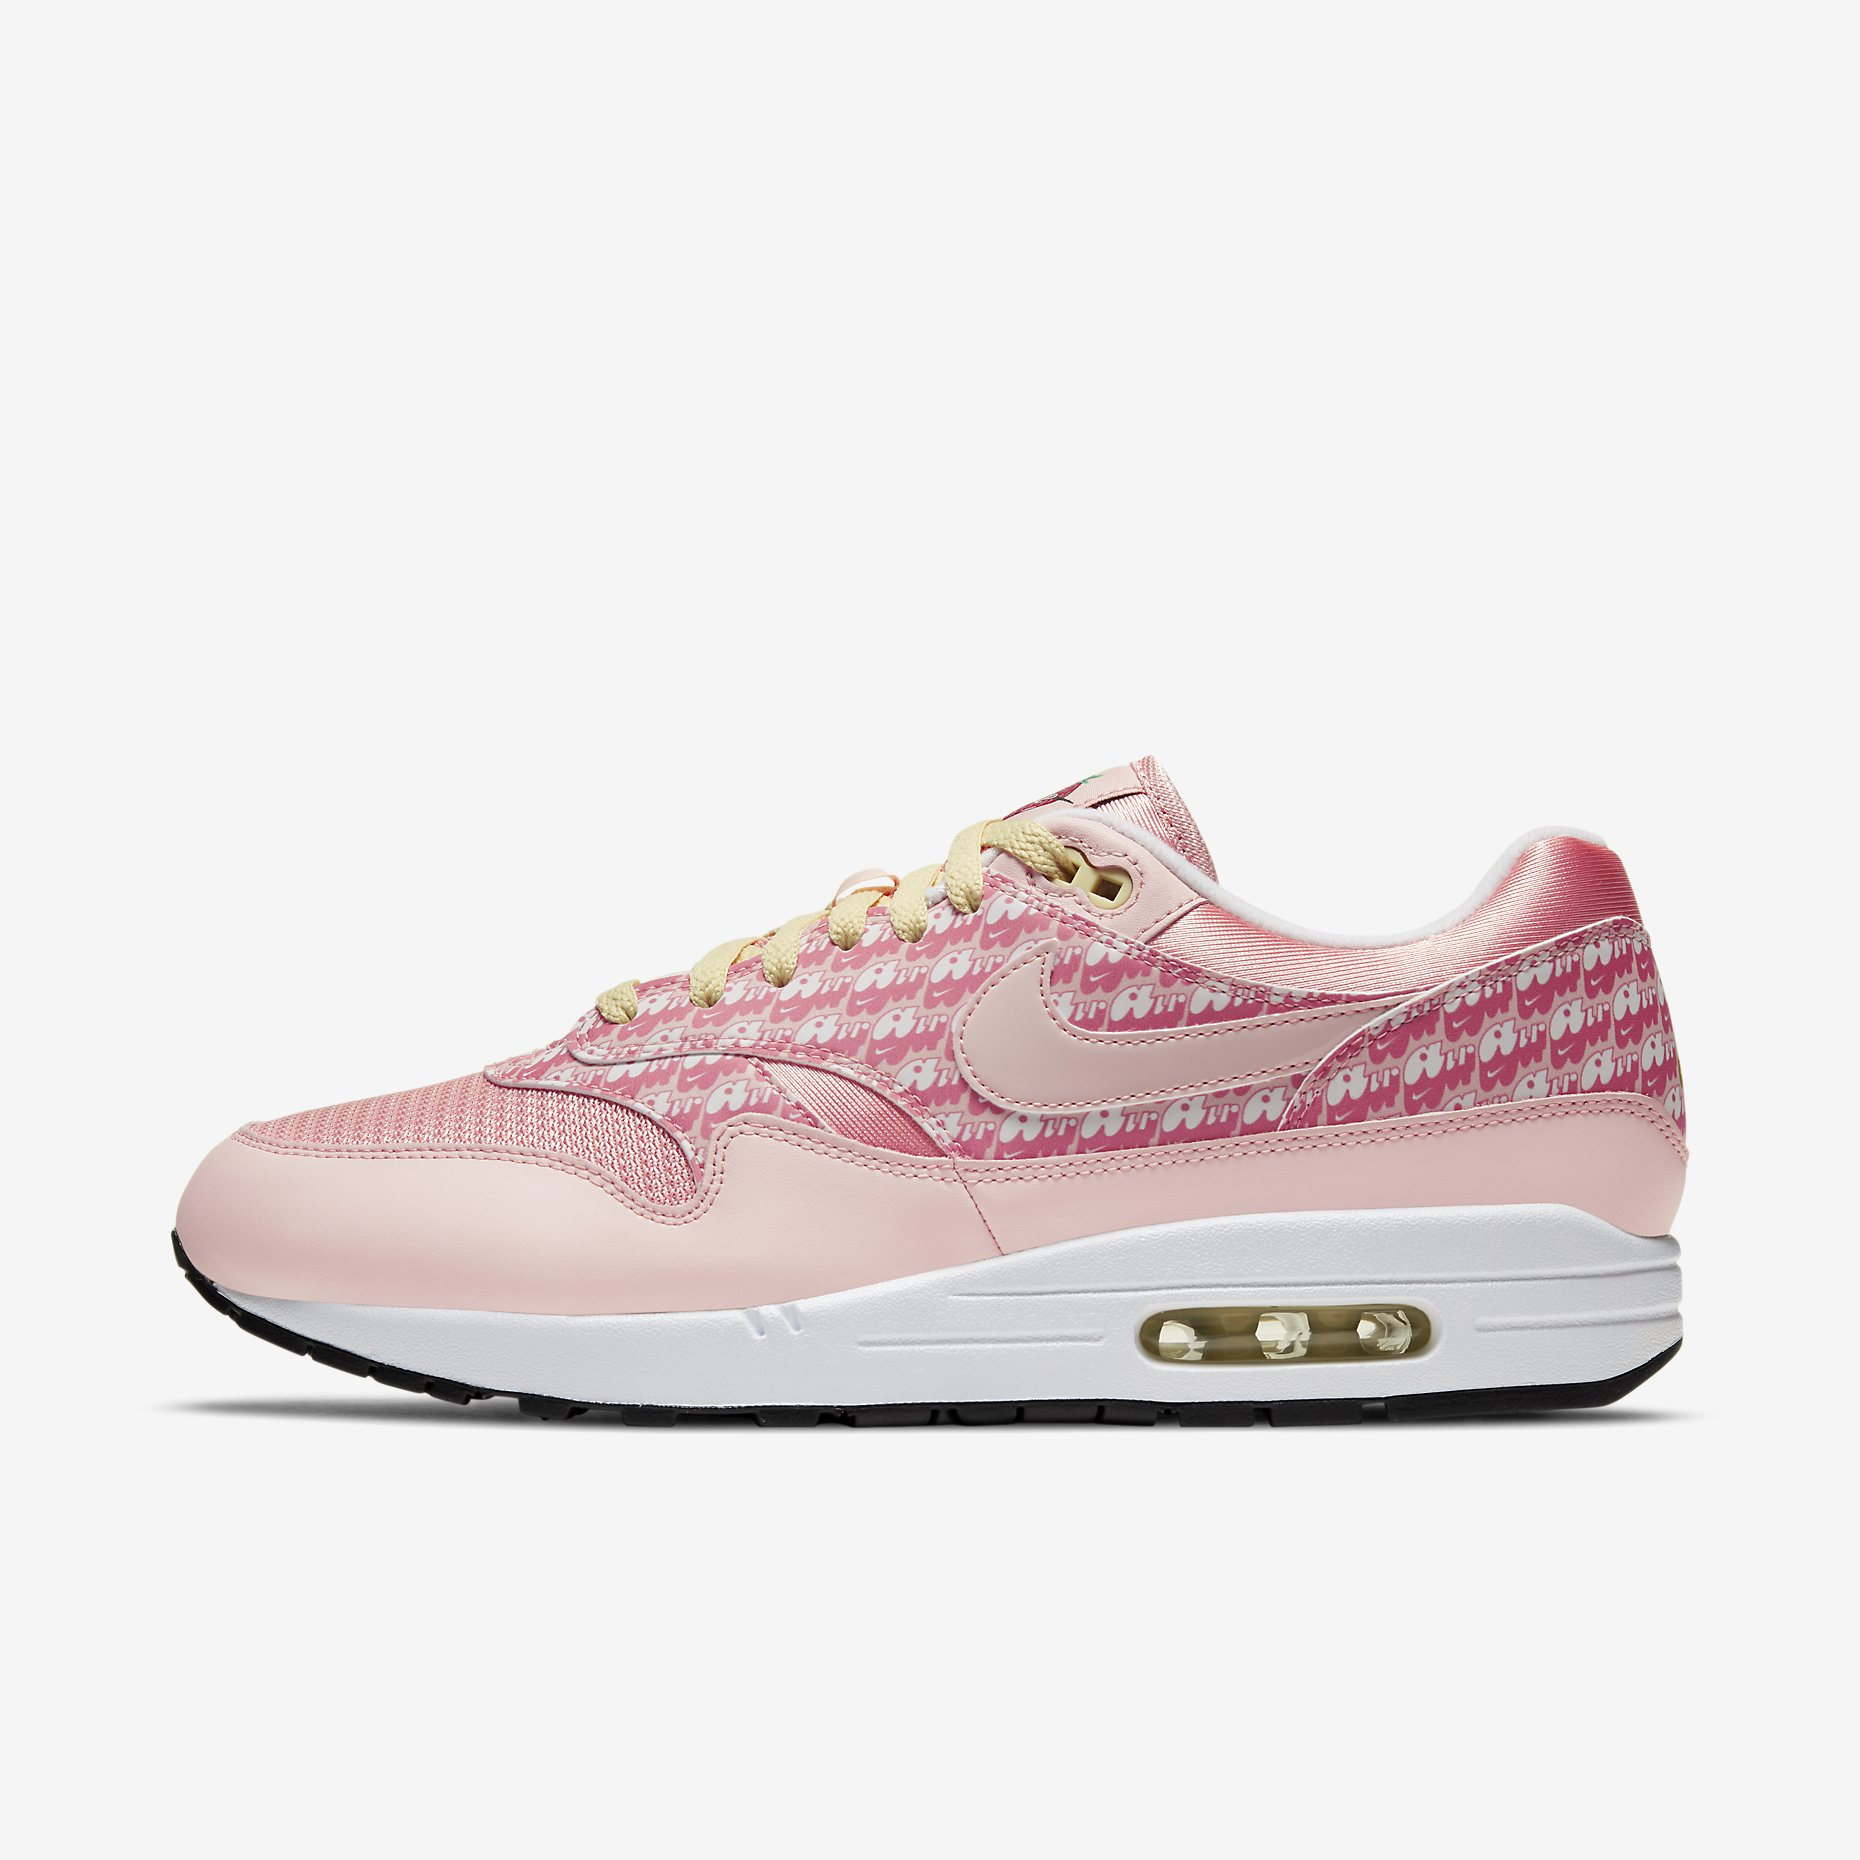 Nike Air Max 1 Premium QS Powerwall 'Strawberry Lemonade'}